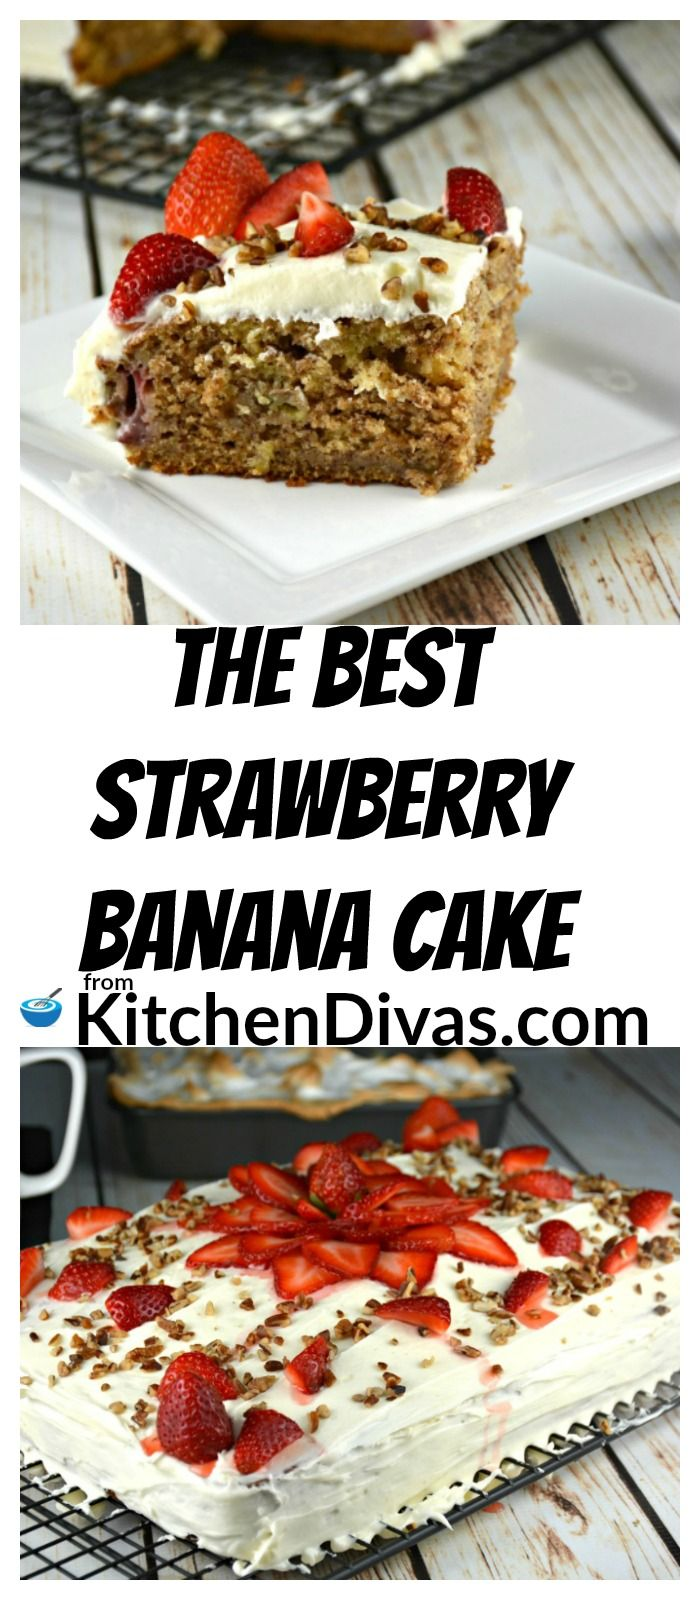 This recipe for The Best Strawberry Banana Cake is a definite keeper! Perfect for strawberry season, and truth be told, any time of the year. The cake comes out super moist every time. No one needs dry cake in their lives! The buttermilk really helps make this cake the perfect texture. I also just love the flavor combination of strawberries and bananas together with that hint of cinnamon! It really makes such a difference!